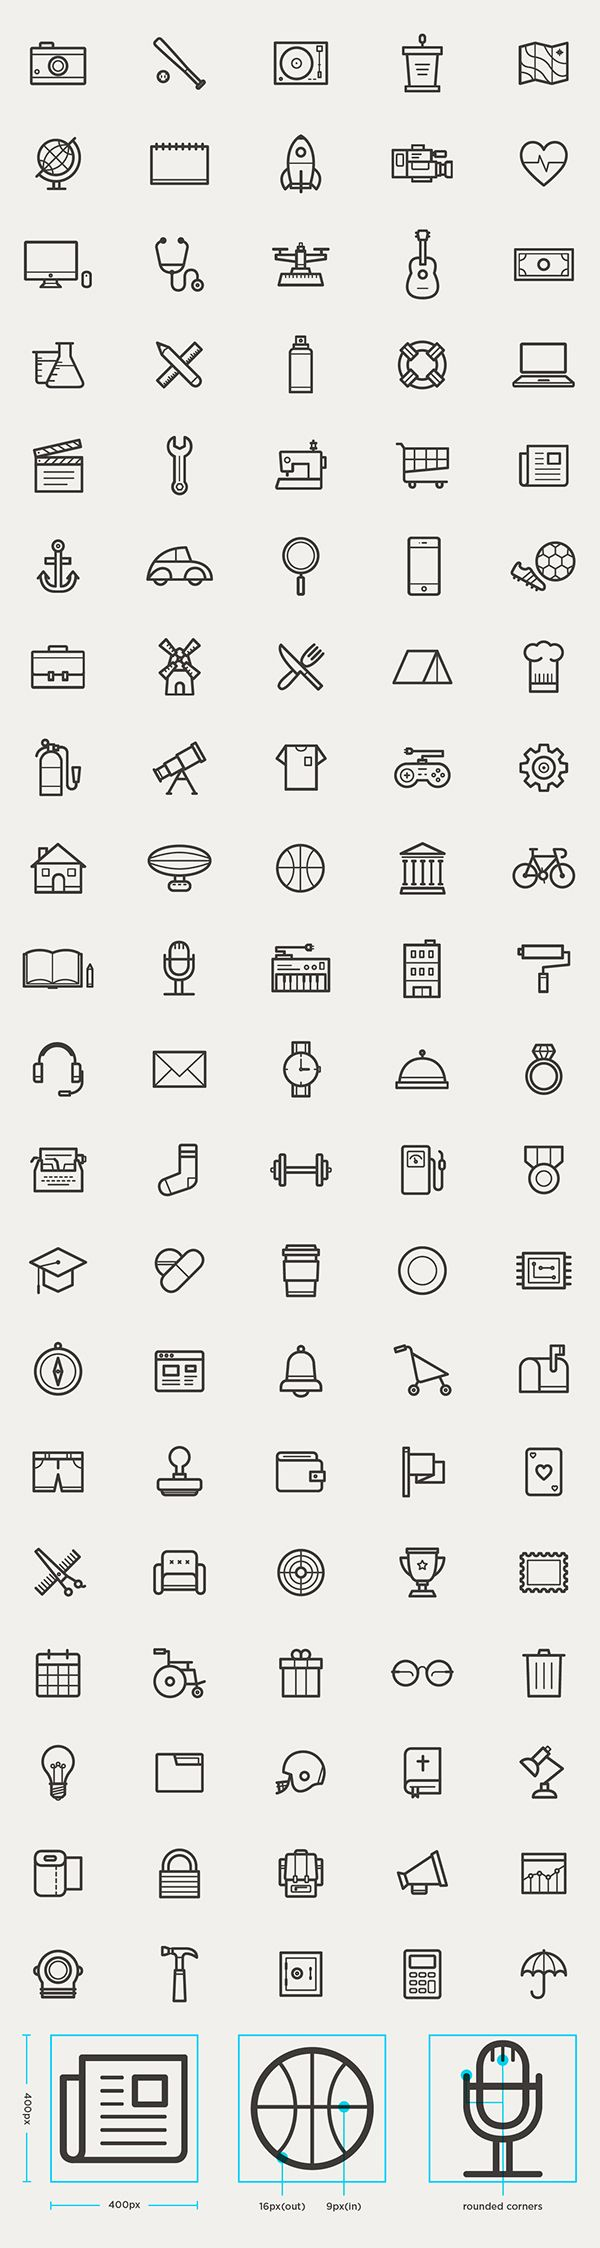 free_outline_icons_set_95_icons